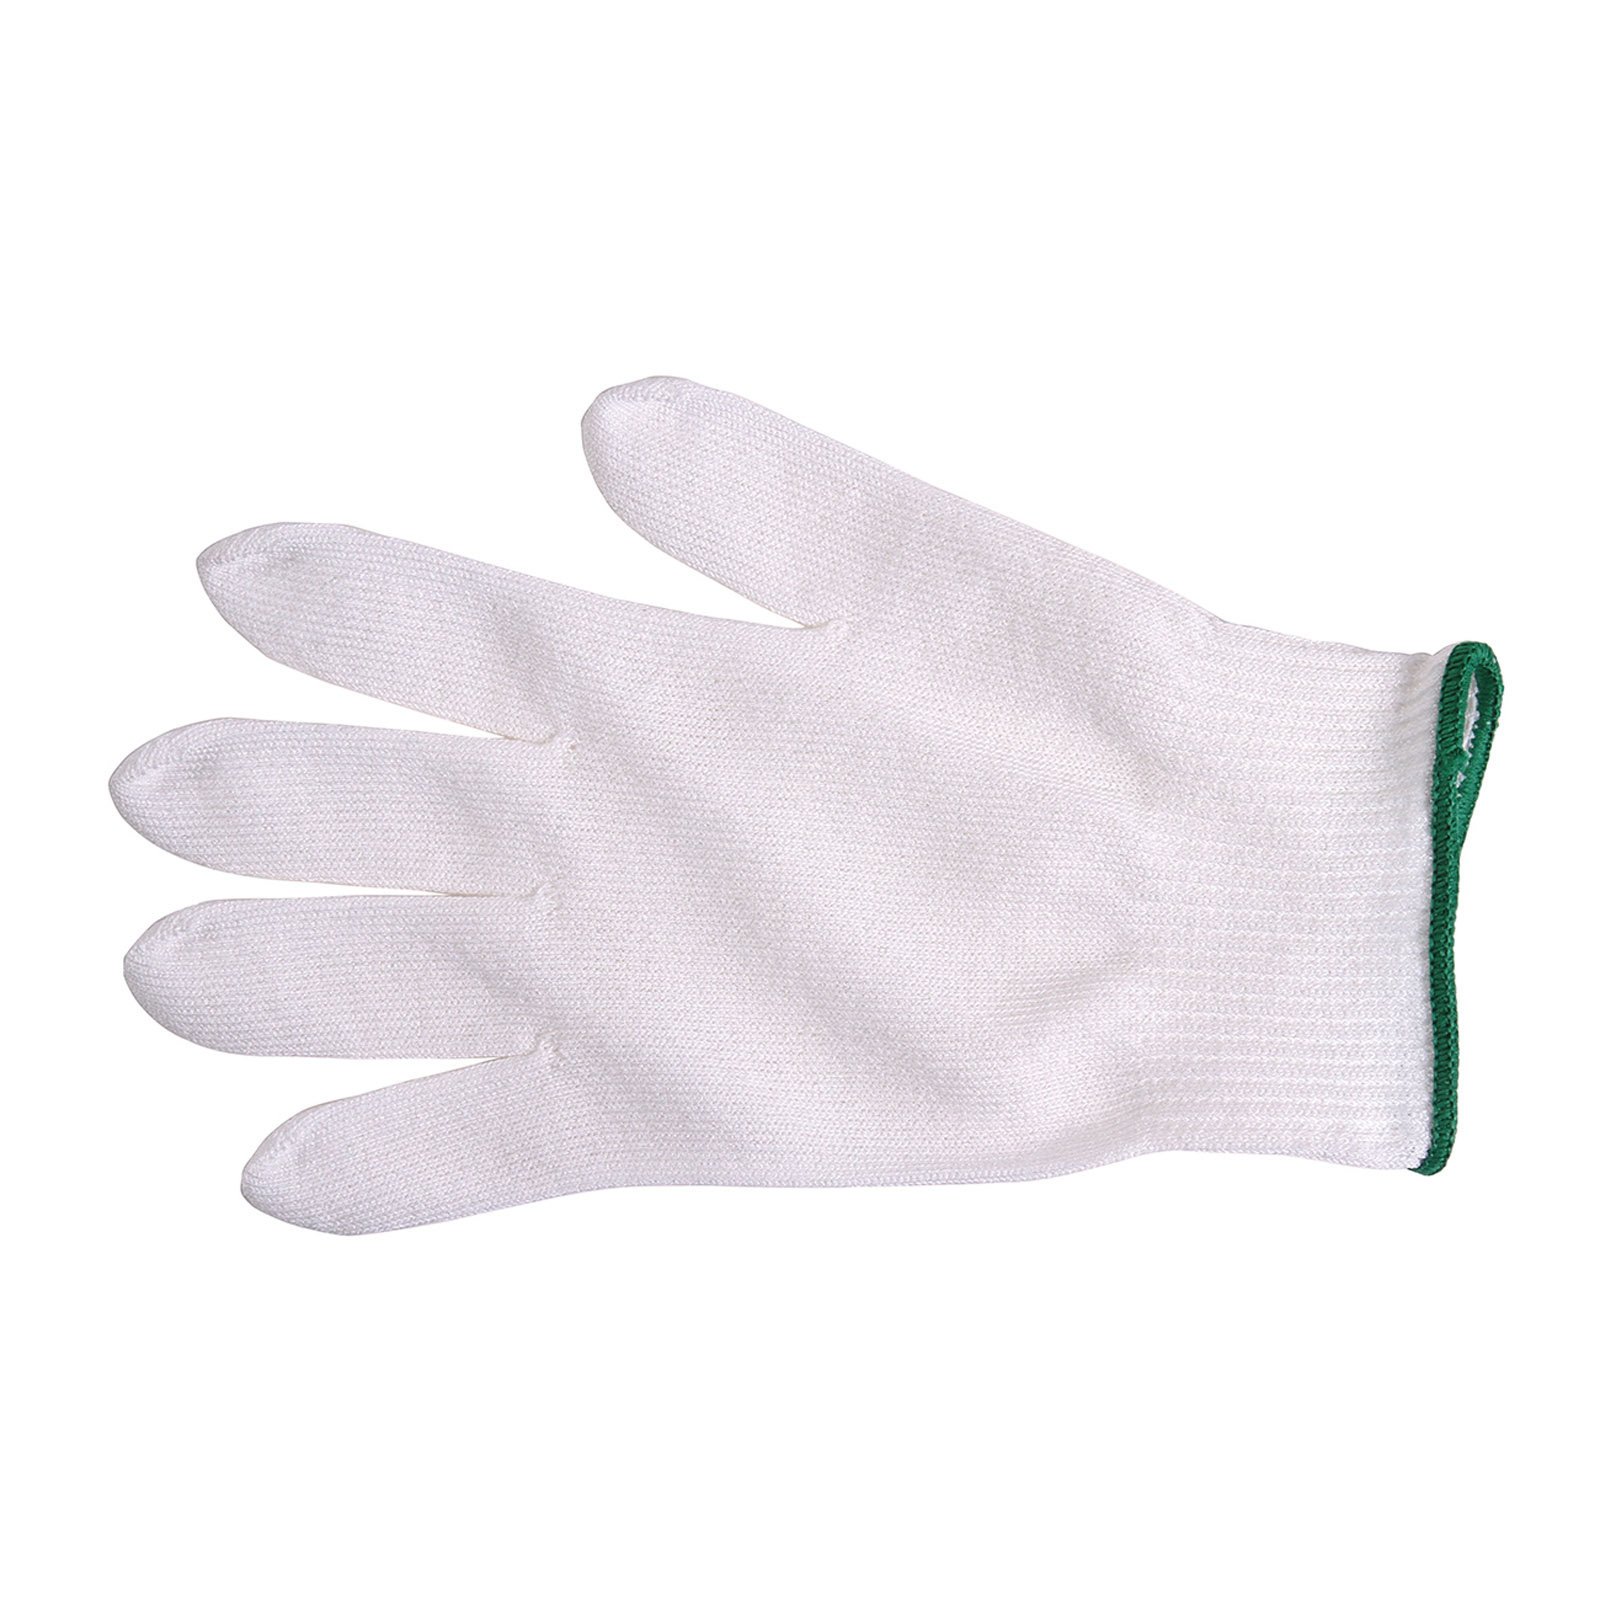 Mercer Culinary M33411M glove, cut resistant